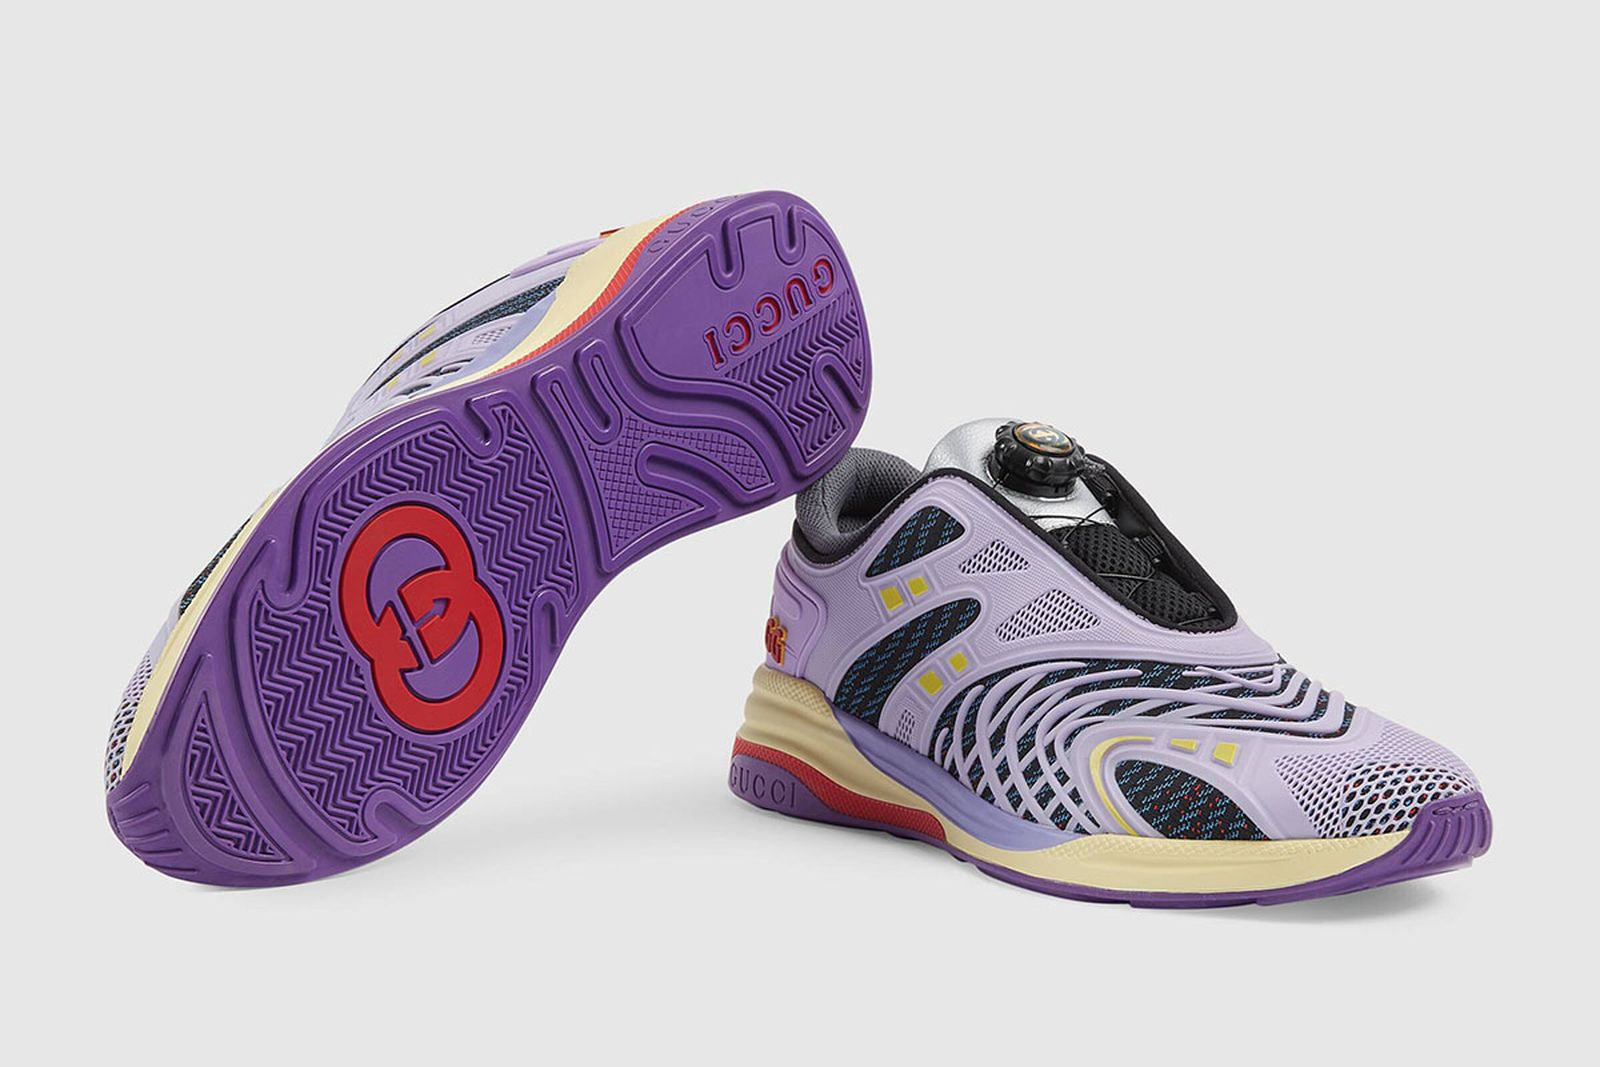 gucci-ultrapace-r-lilac-yellow-release-date-price-01